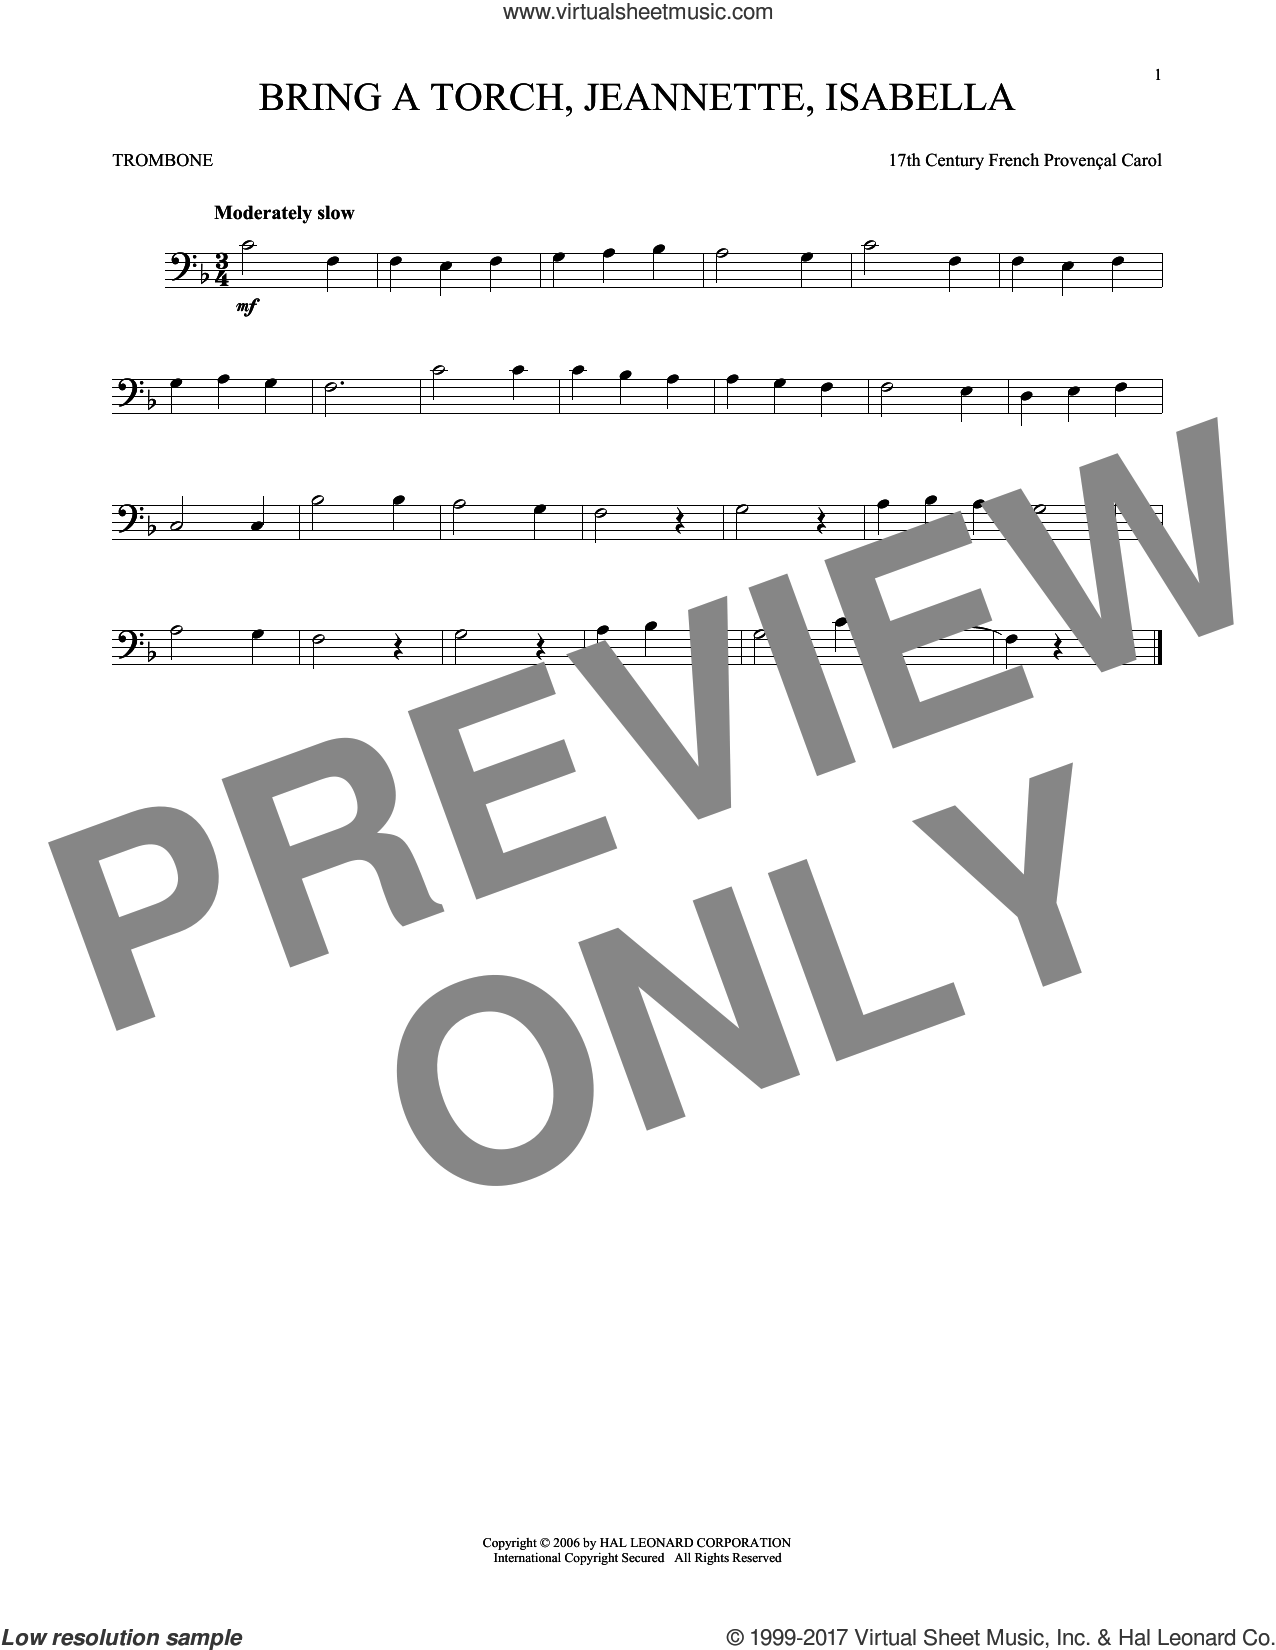 Bring A Torch, Jeannette, Isabella sheet music for trombone solo by Anonymous and Miscellaneous, intermediate skill level